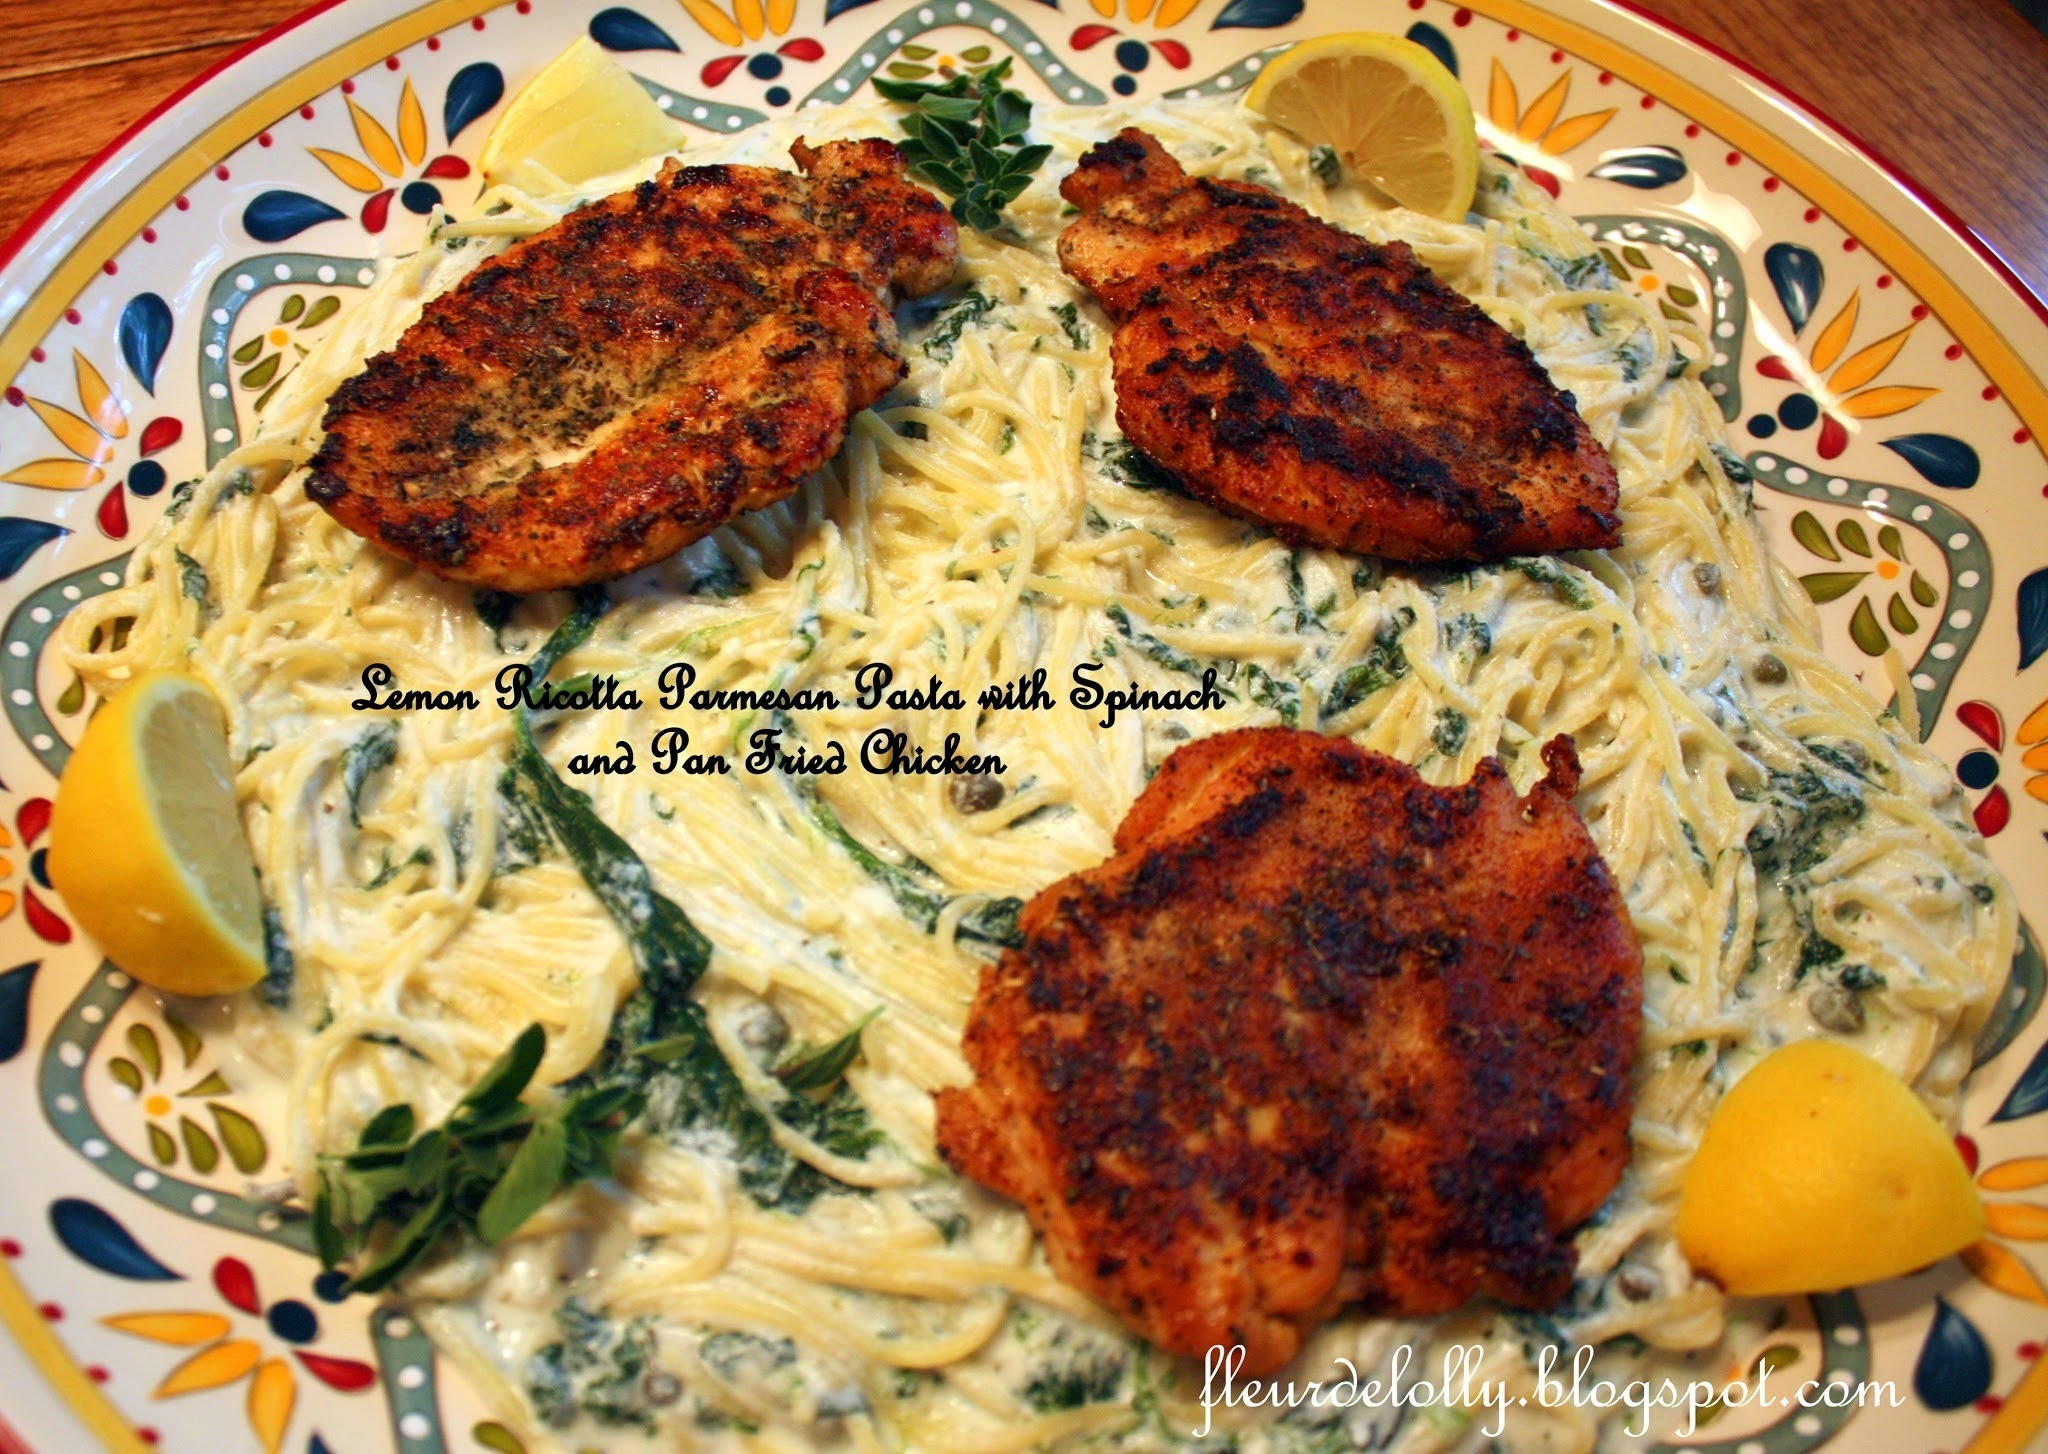 Lemon Ricotta Parmesan Pasta with Spinach and Pan Fried Chicken